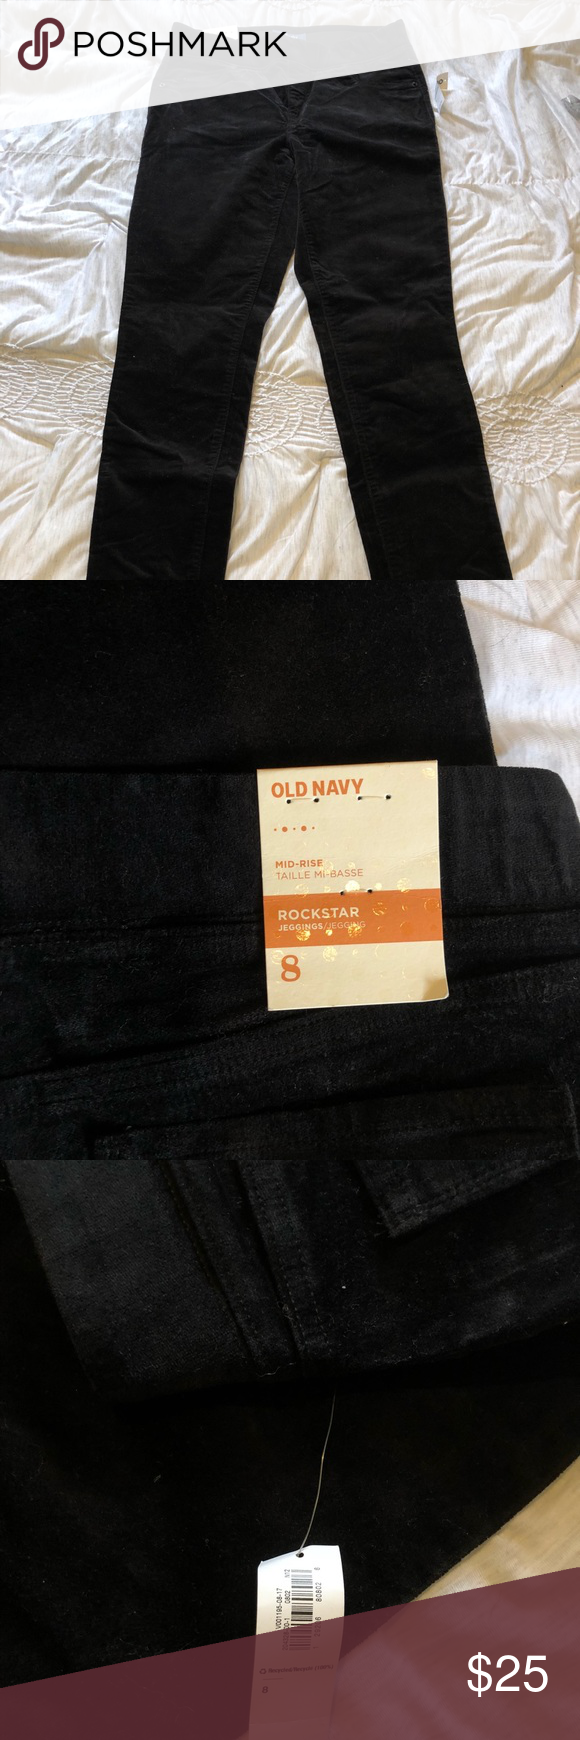 bef4a73abf168f NWT Size 8 Mid-Rise Black Velvet Jeggings New with tags mid-rise black  velvet leggings from old navy. Size 8. Old Navy Pants Skinny